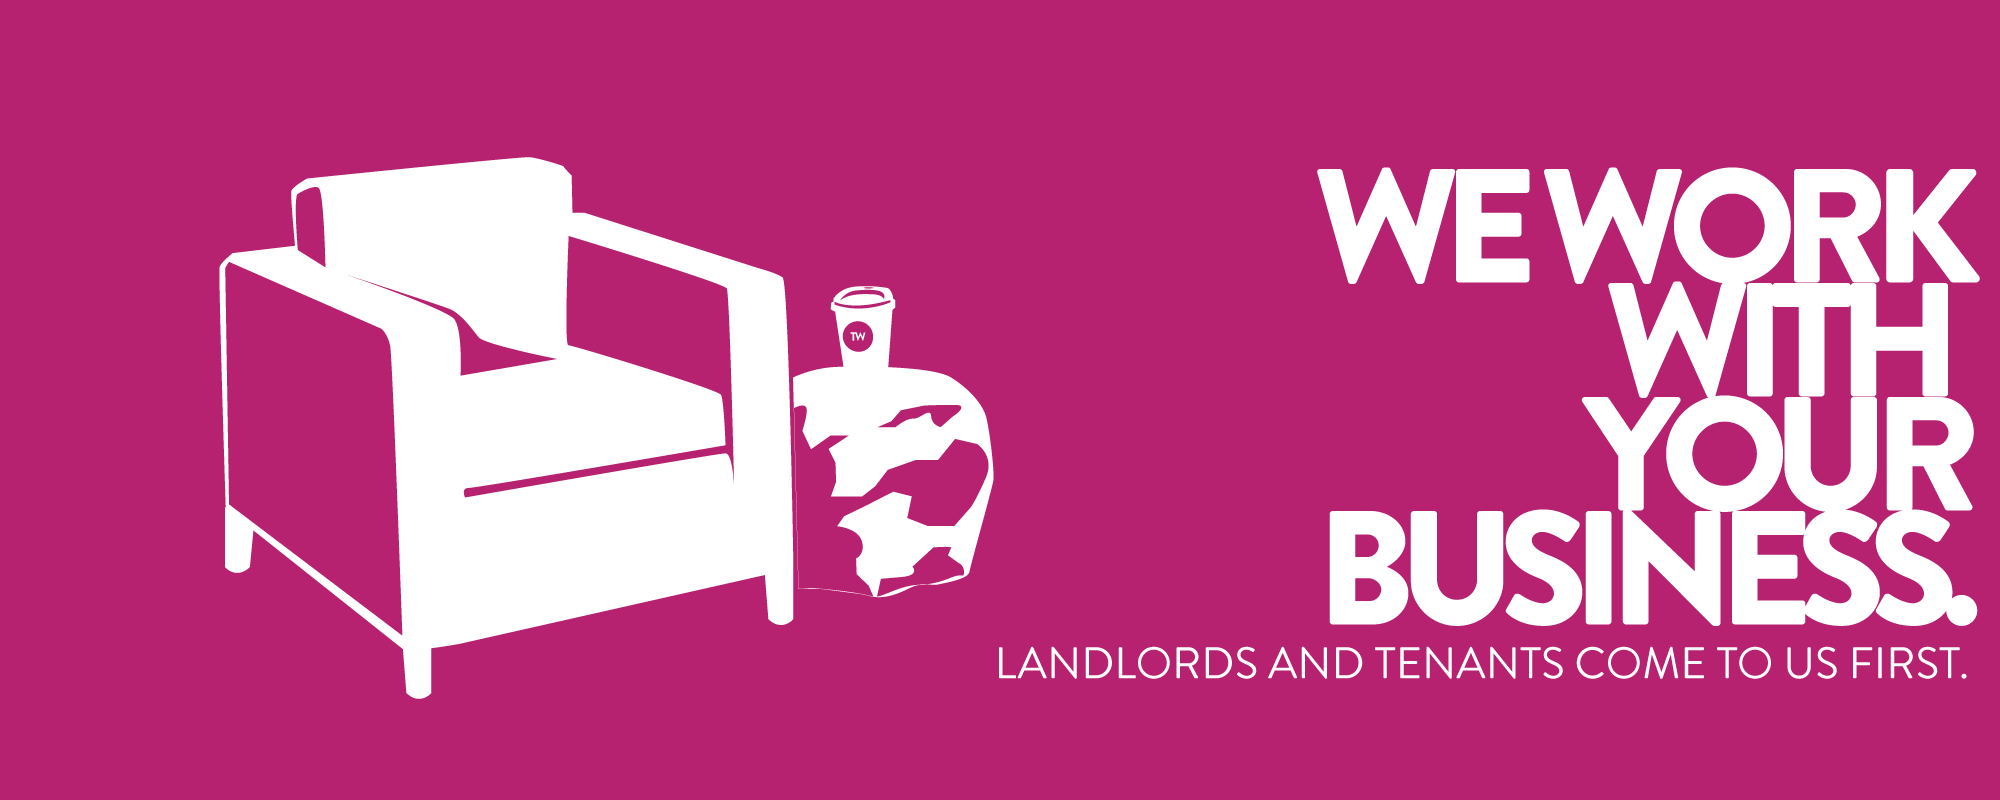 Services for Landlords and Tenants